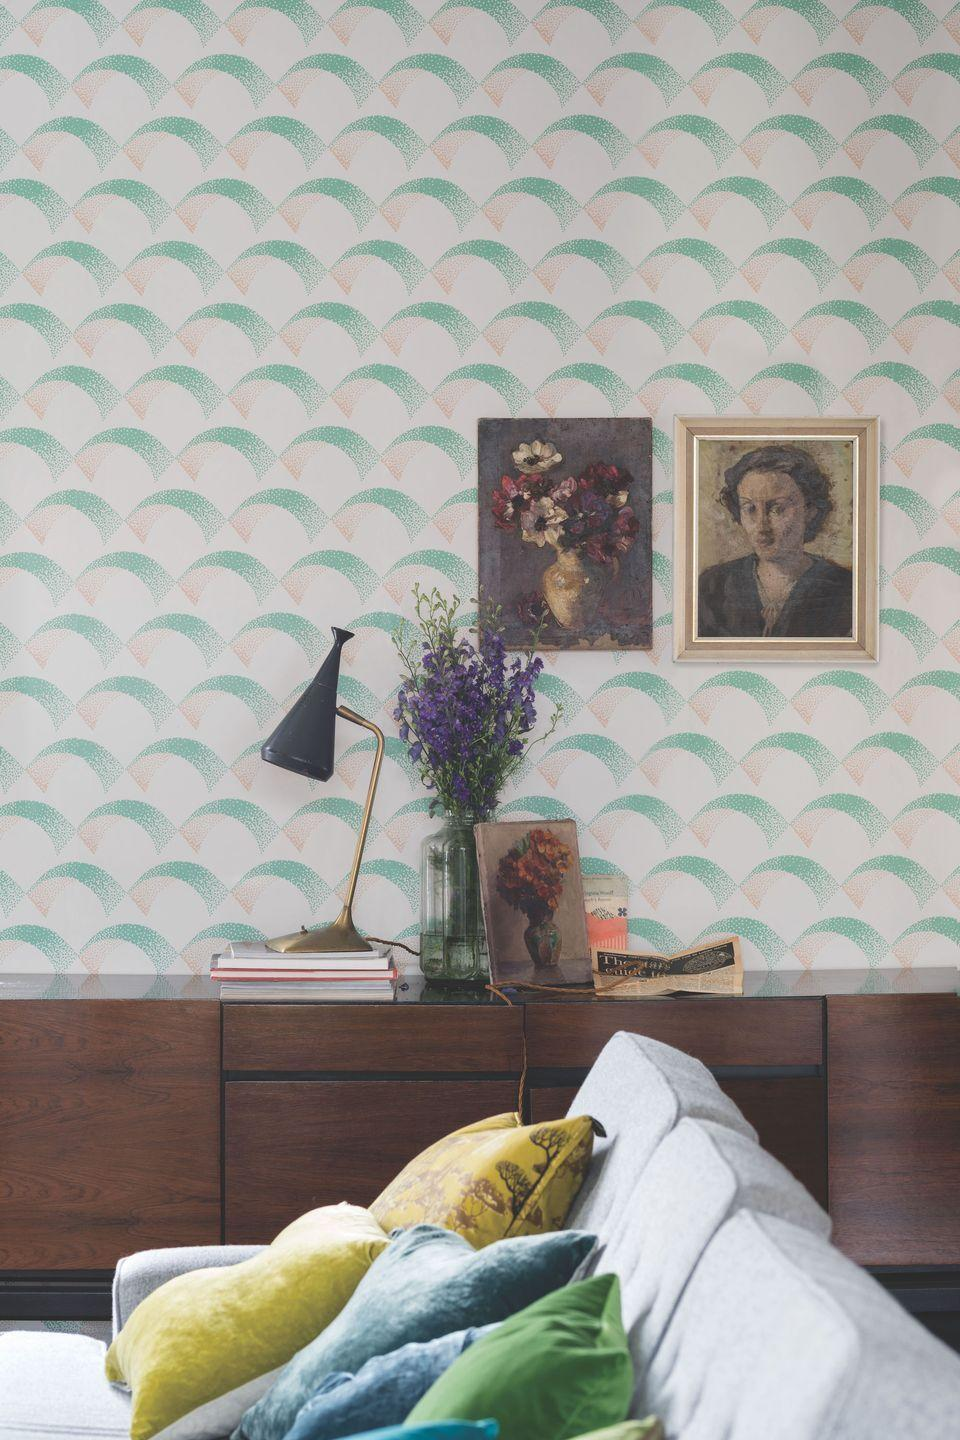 """<p>Soft and gentle, this beautifully tactile scallop design gently dances across the length of the paper, creating an inherently sophisticated feel in a living room environment.</p><p>Pictured: Arcade BP 5305, <a href=""""https://go.redirectingat.com?id=127X1599956&url=https%3A%2F%2Fwww.farrow-ball.com%2Fwallpaper%2Farcade&sref=https%3A%2F%2Fwww.housebeautiful.com%2Fuk%2Fdecorate%2Fliving-room%2Fg35838996%2Fliving-room-wallpaper-ideas%2F"""" rel=""""nofollow noopener"""" target=""""_blank"""" data-ylk=""""slk:Farrow & Ball"""" class=""""link rapid-noclick-resp"""">Farrow & Ball</a></p>"""